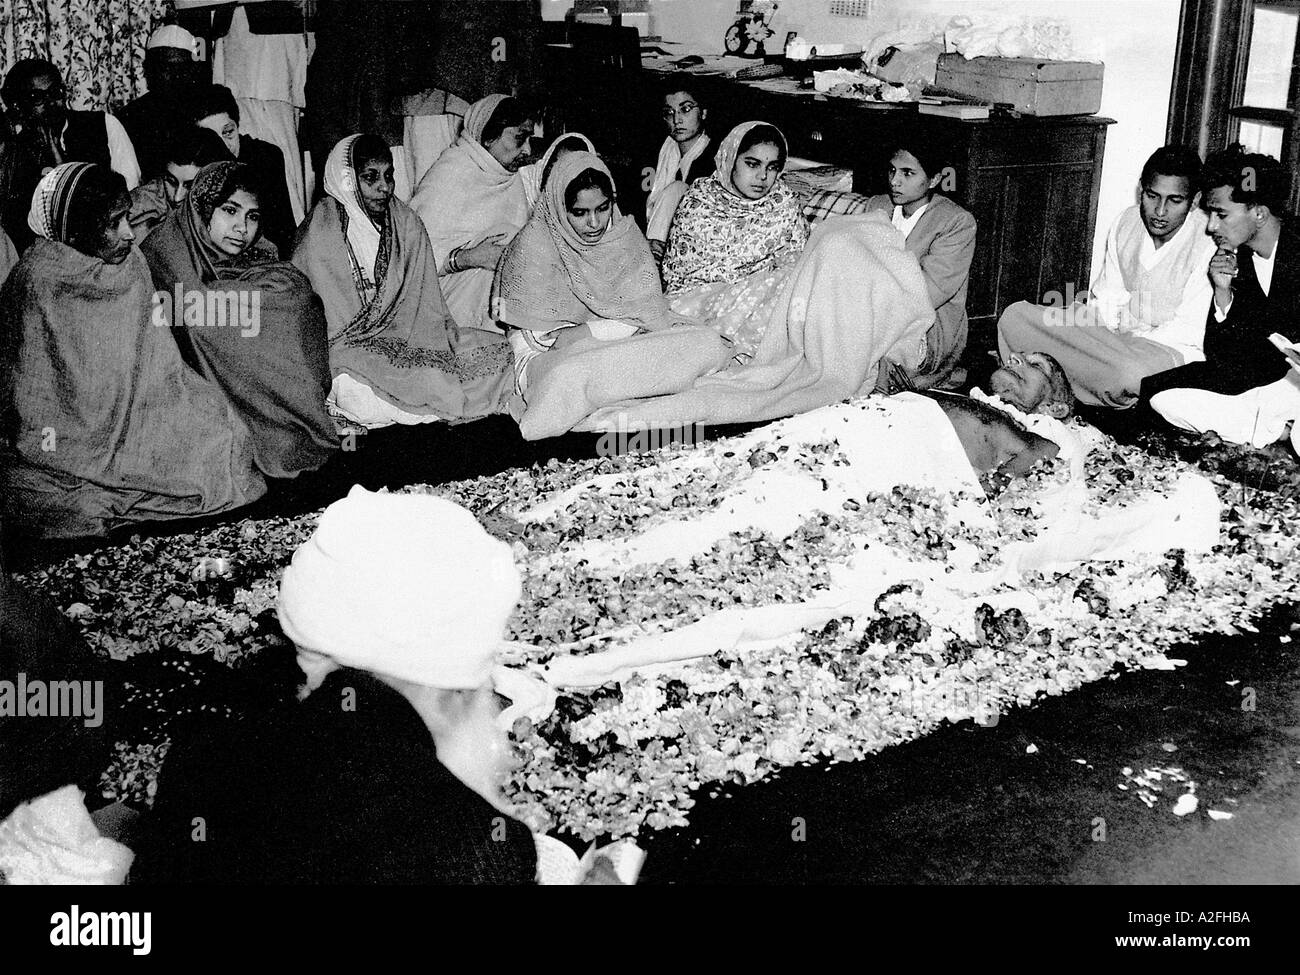 India 1948 Black and White Stock Photos & Images - Alamy